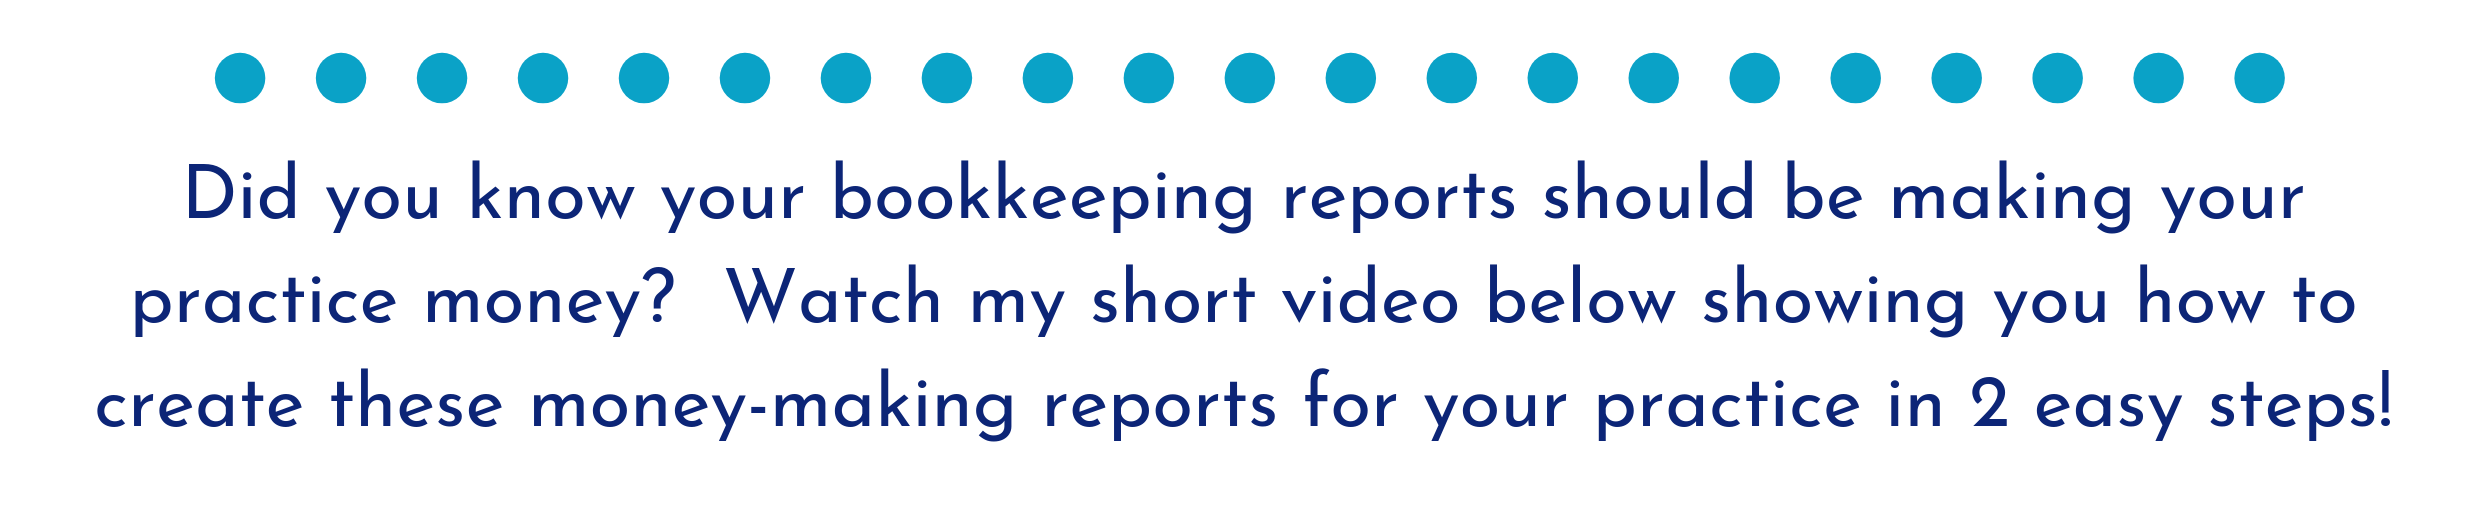 Did you know your bookkeeping reports should be making your practice money_ Watch my short video below showing you how to create these money-making reports for your practice in 2 easy steps! (2).png